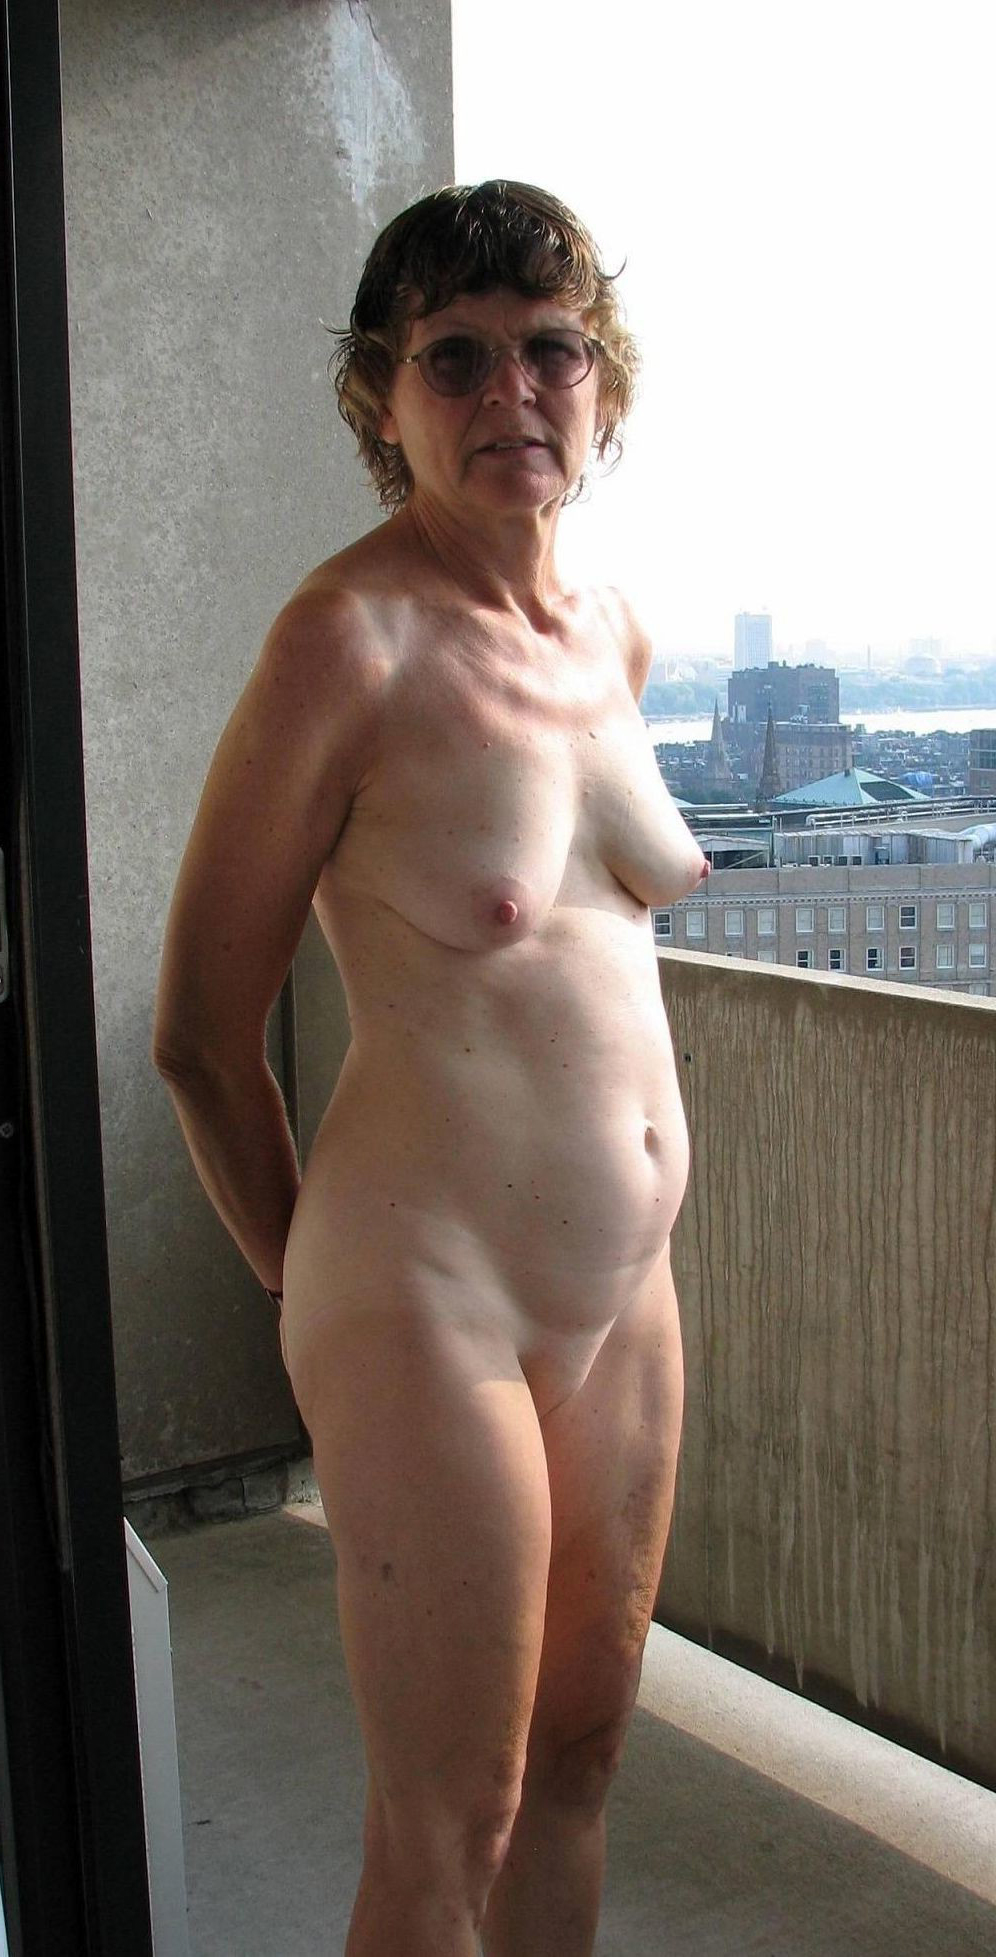 horny unembellished aristocracy over 60 stripping